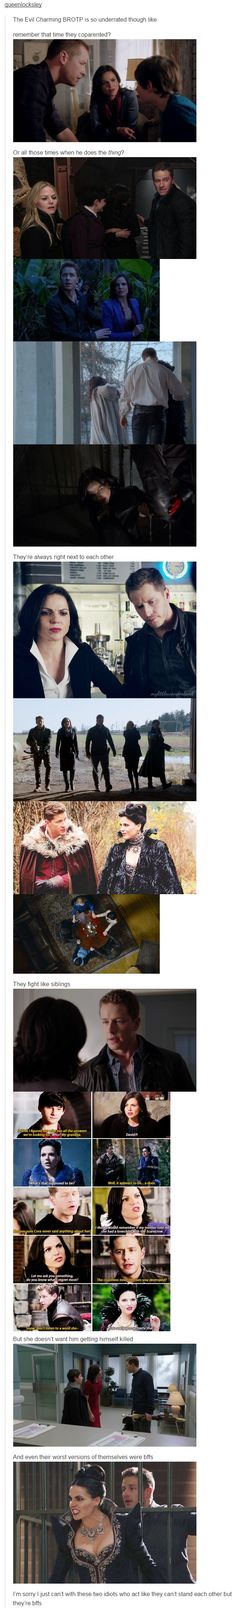 EvilCharming Brotp! XD dying